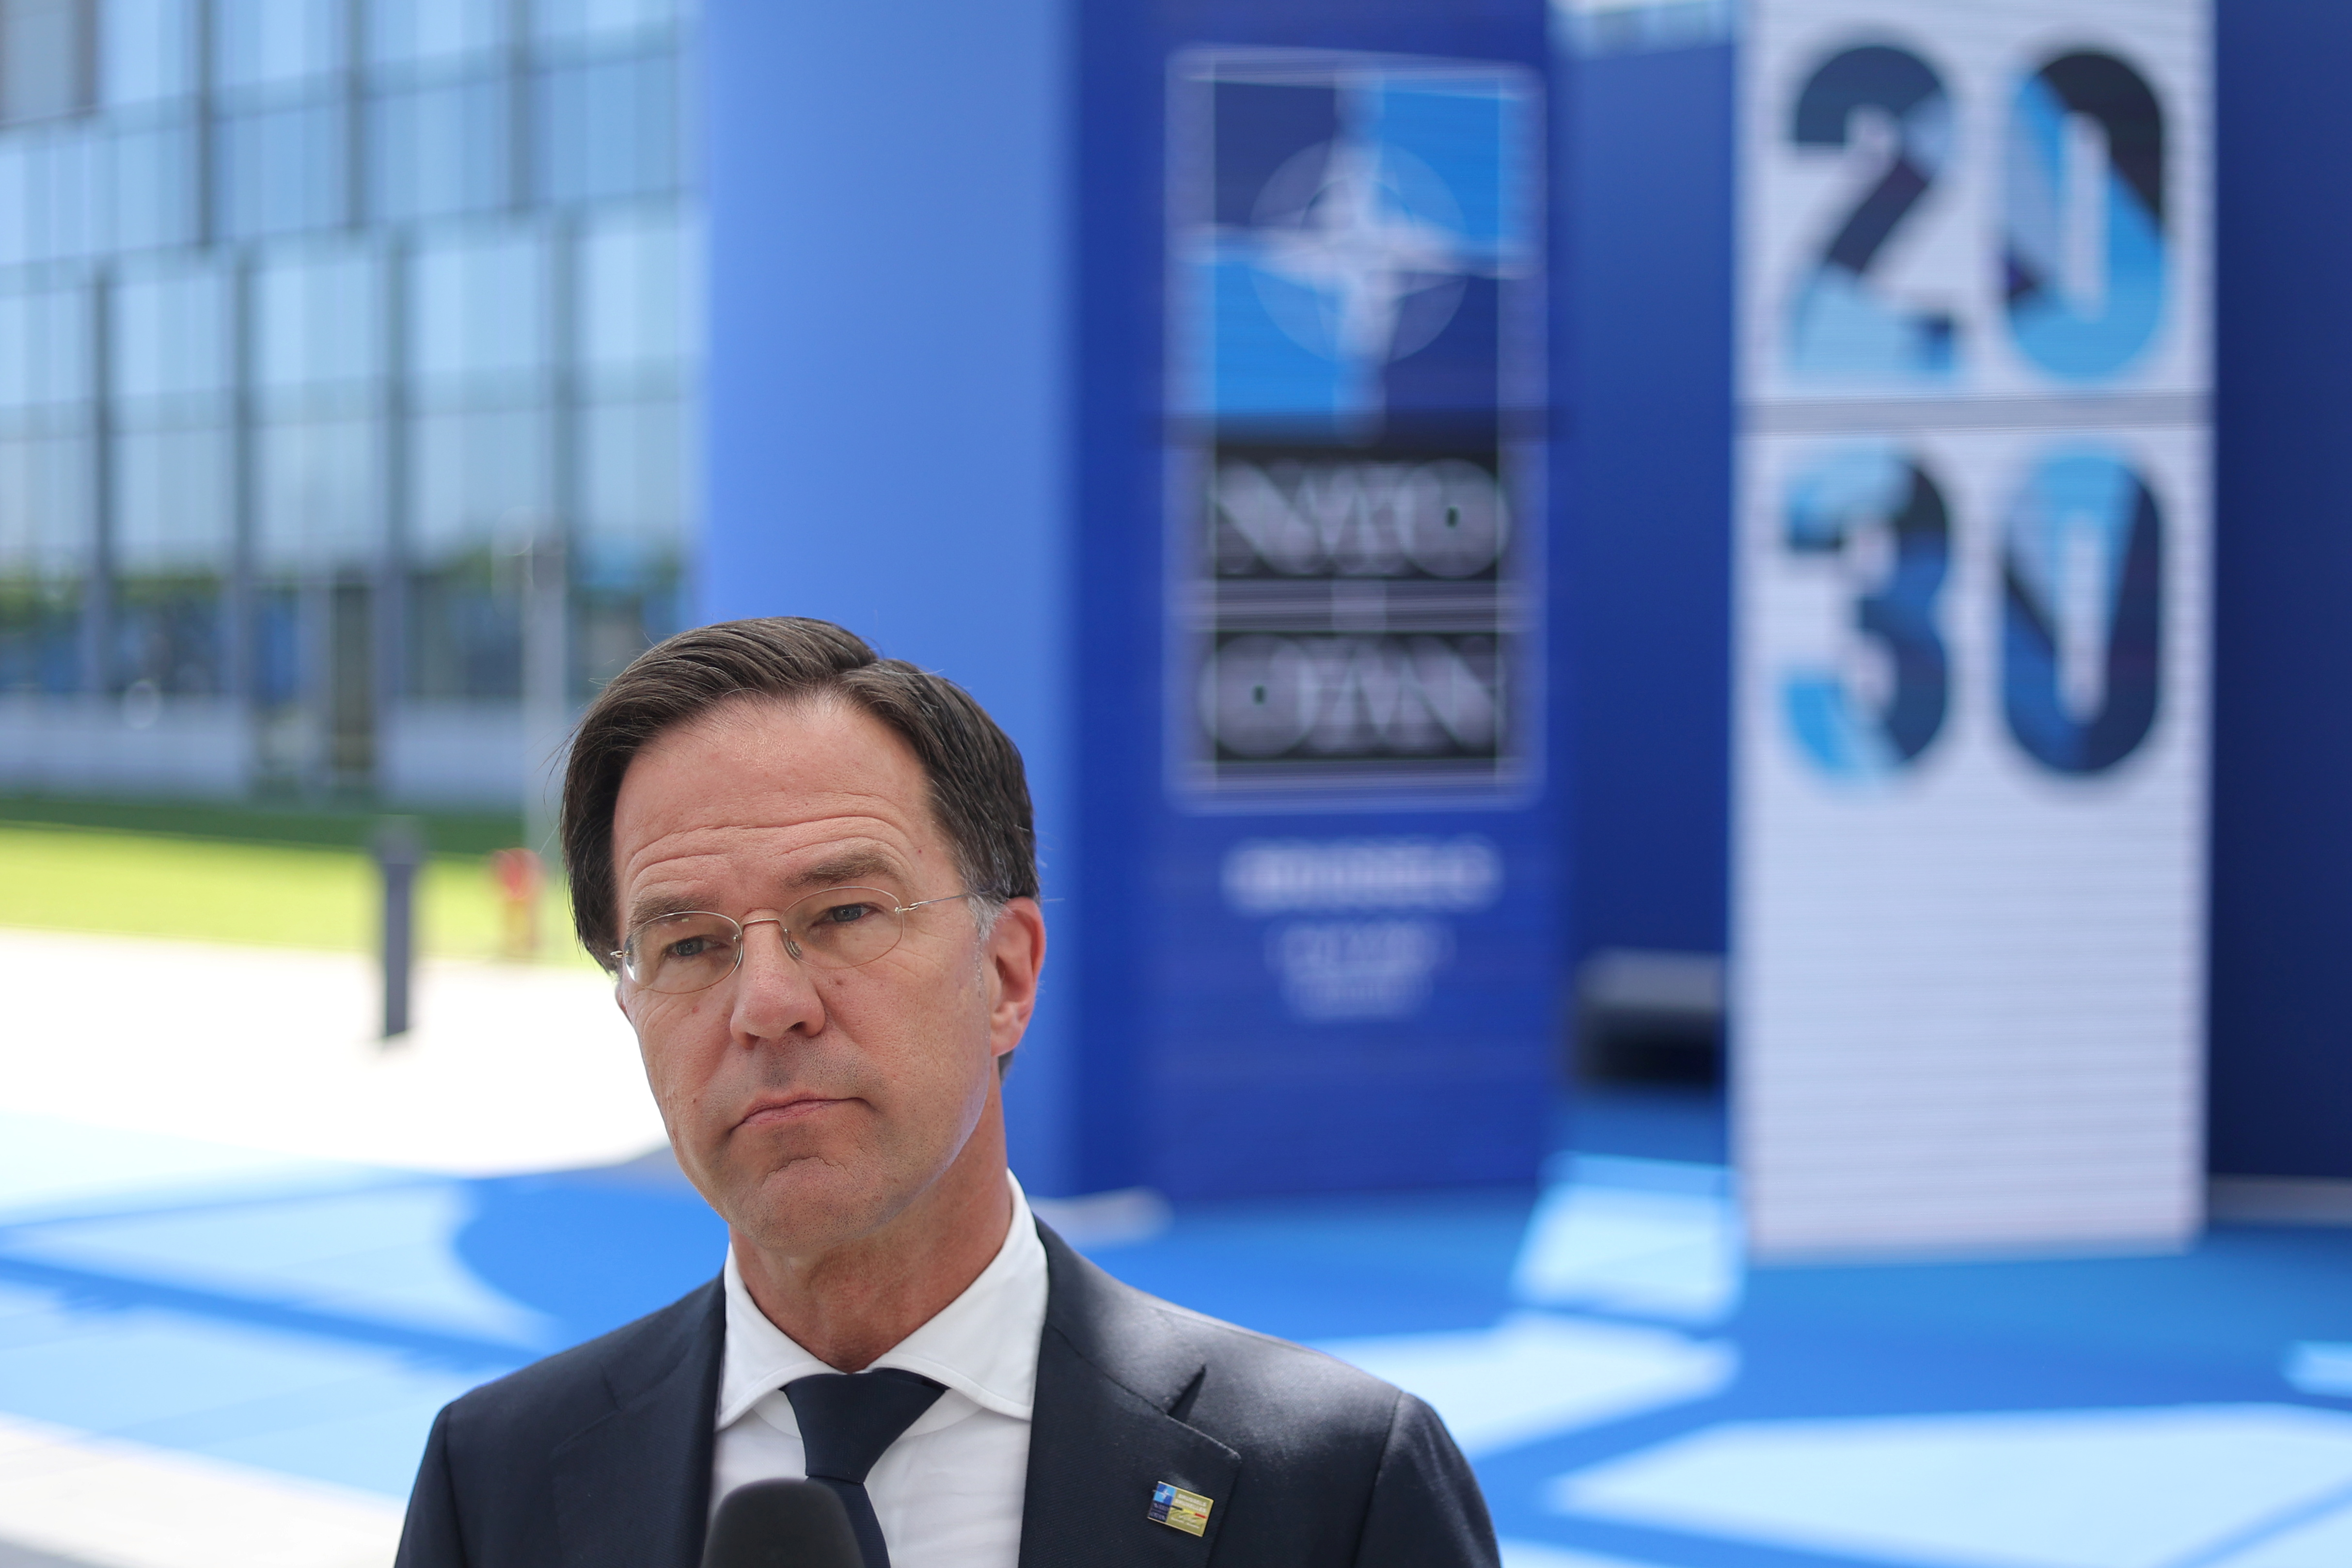 Dutch Prime Minister Mark Rutte arrives for the NATO summit at the Alliance's headquarters, in Brussels, Belgium, June 14, 2021. Kenzo Tribouillard/Pool via REUTERS